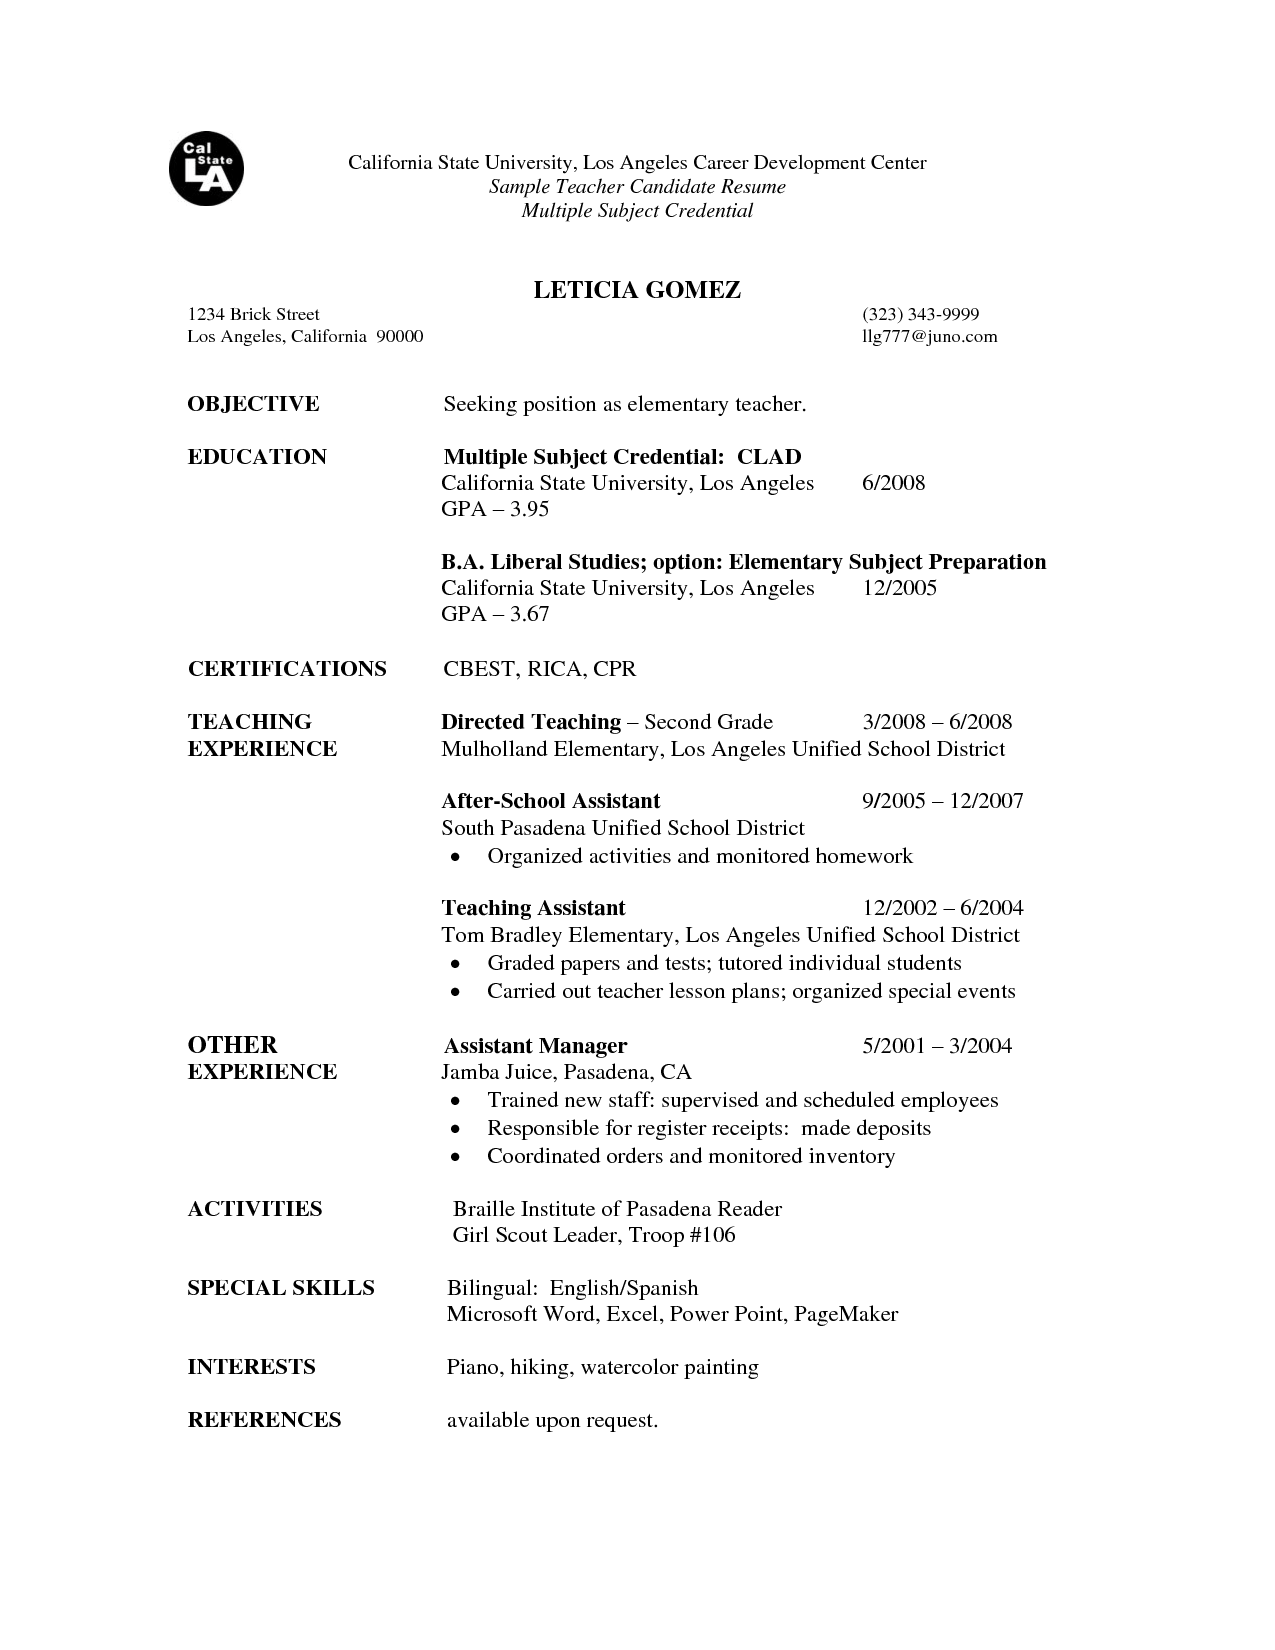 Resume Education Example Best Image Result For First Resume For Teacher  Resume  Pinterest Design Decoration